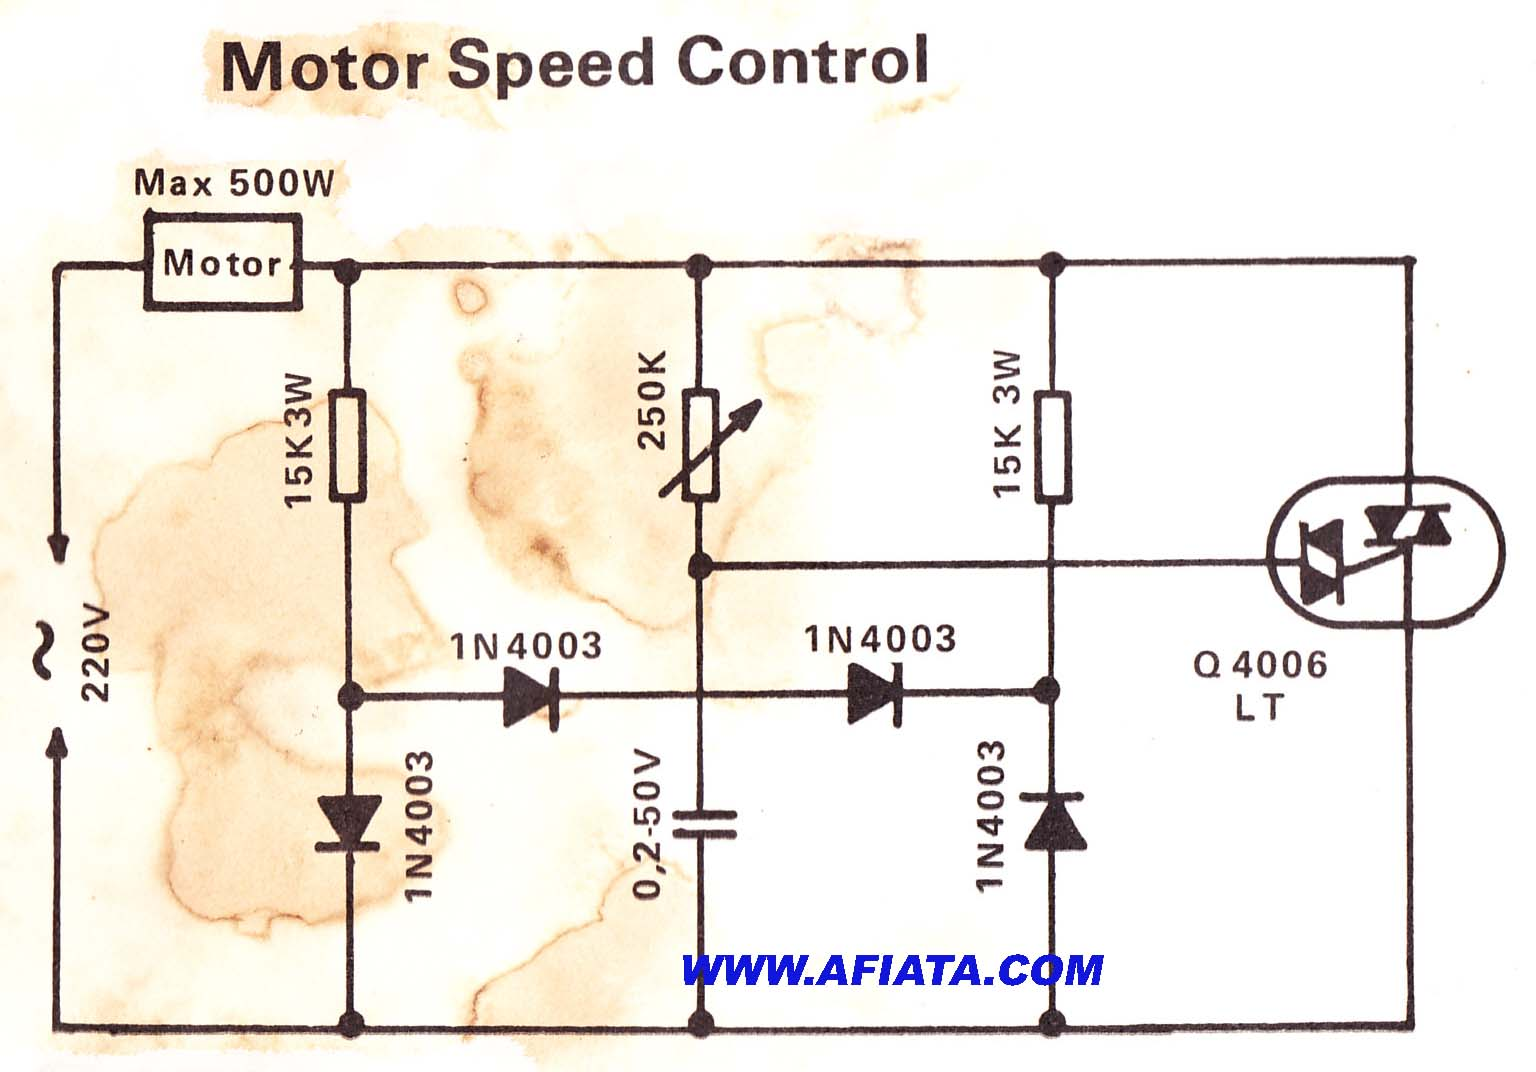 Motor Control Wiring Diagram Manual Of Electric Symbols Get Free Image About General Brushless Controller